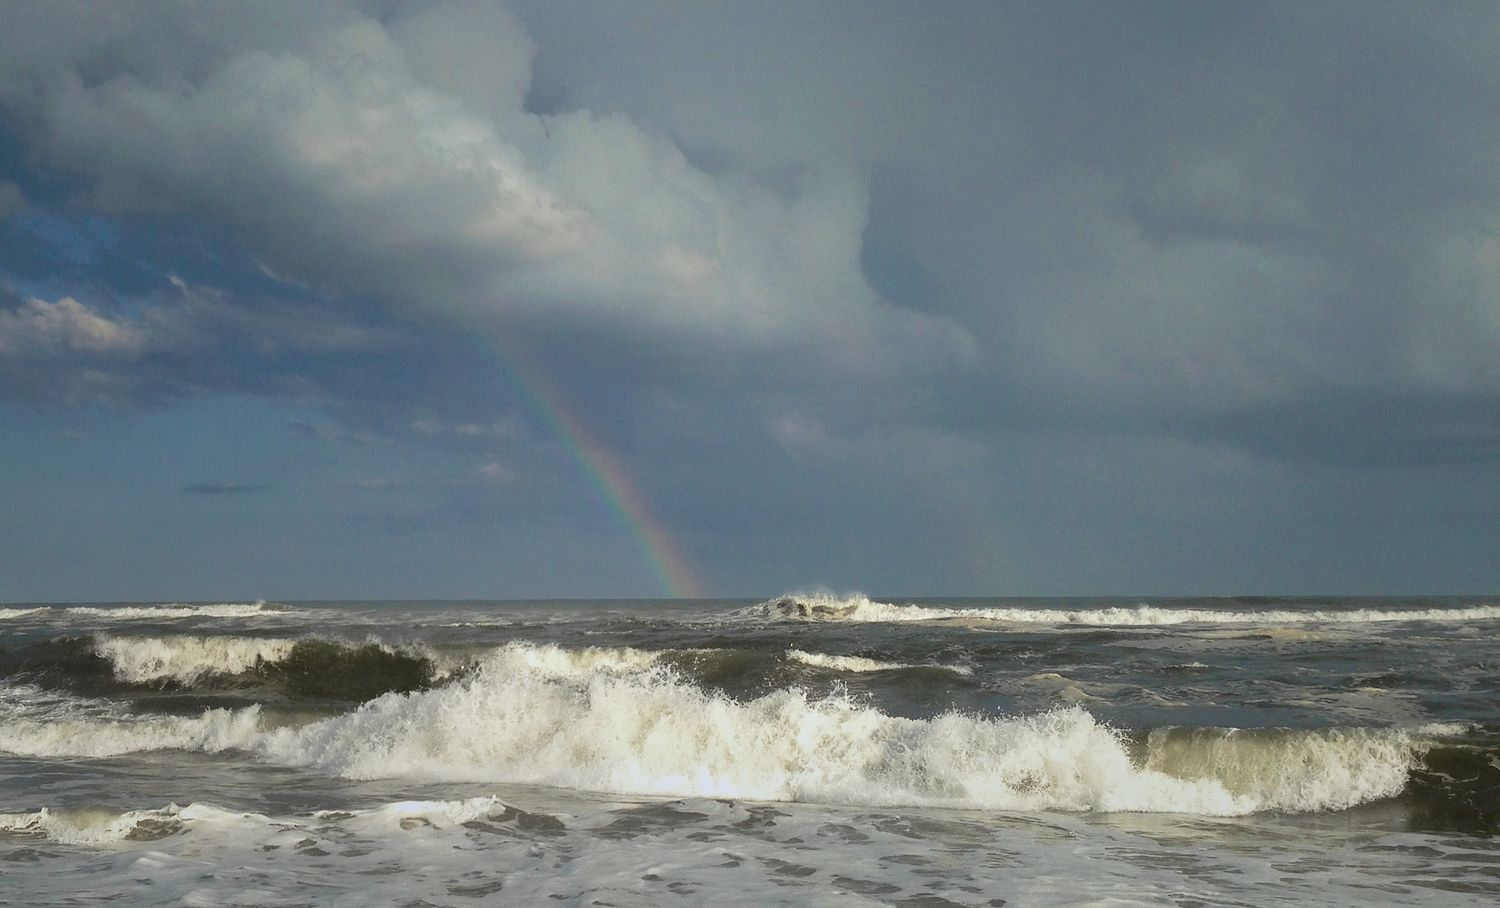 and a rainbow magically appeared over the ocean (from Fire Island)